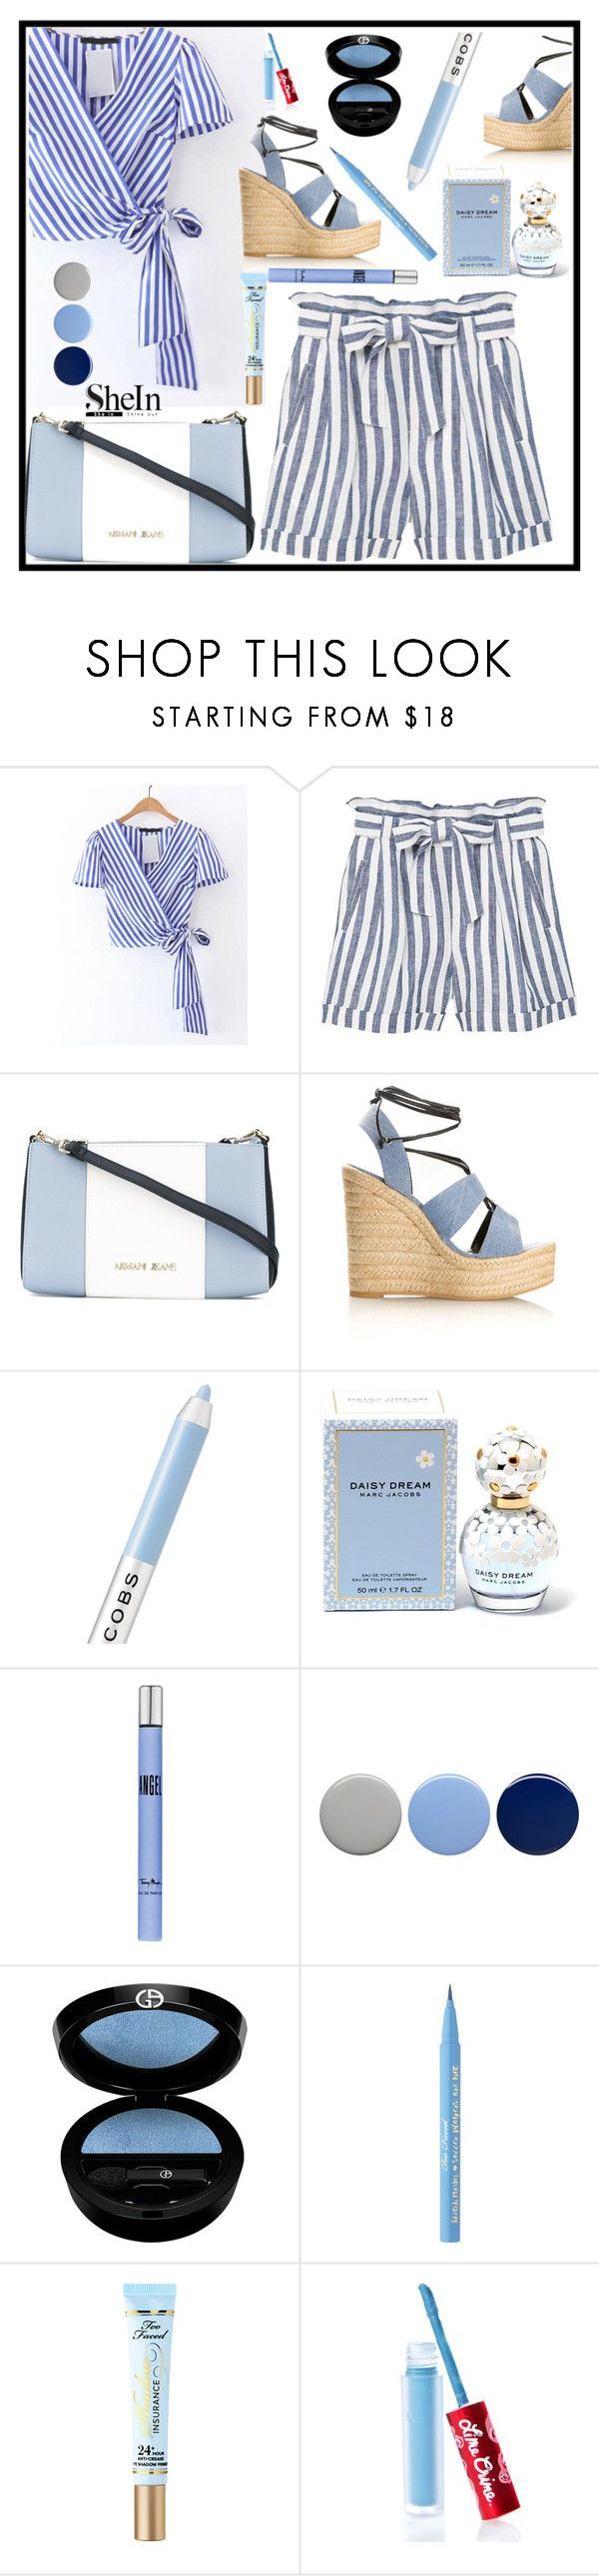 """""""Win $35 coupon! - Shein Contest"""" by imsirovic-813 ❤ liked on Polyvore featuring MANGO, Armani Jeans, Yves Saint Laurent, Marc Jacobs, Thierry Mugler, Burberry, Giorgio Armani, Too Faced Cosmetics and Lime Crime"""